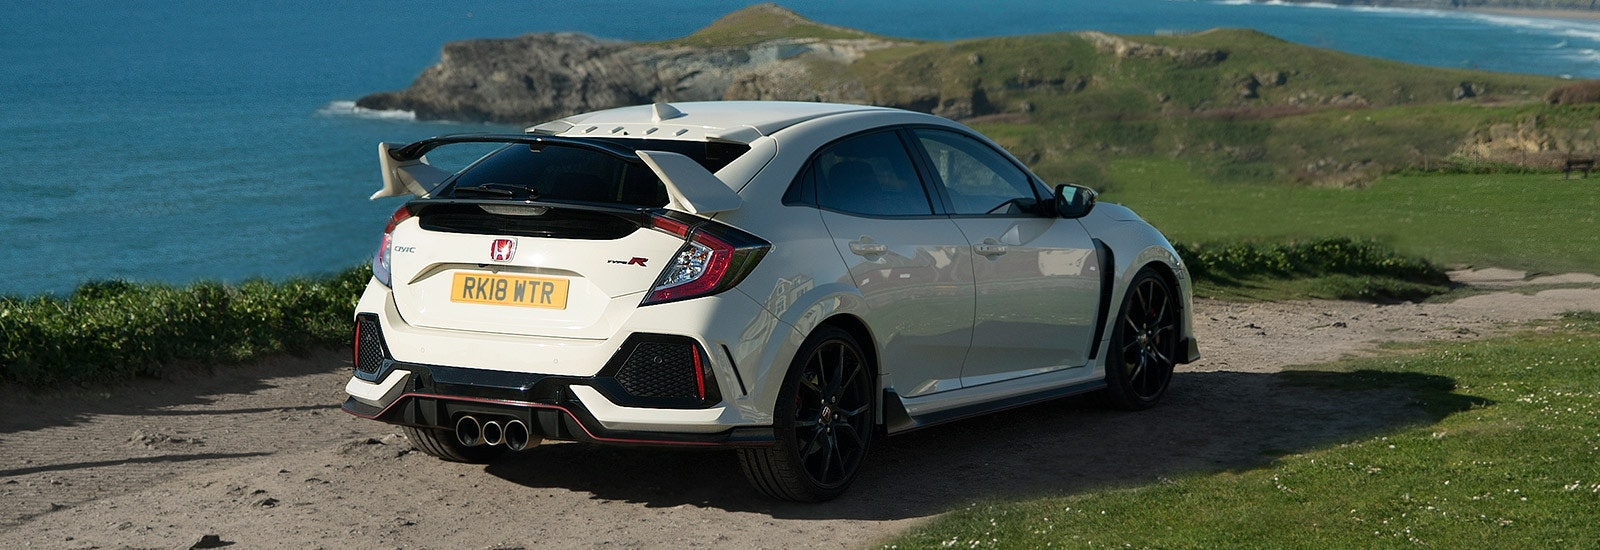 Championship White Honda Civic Type R parked, viewed from behind